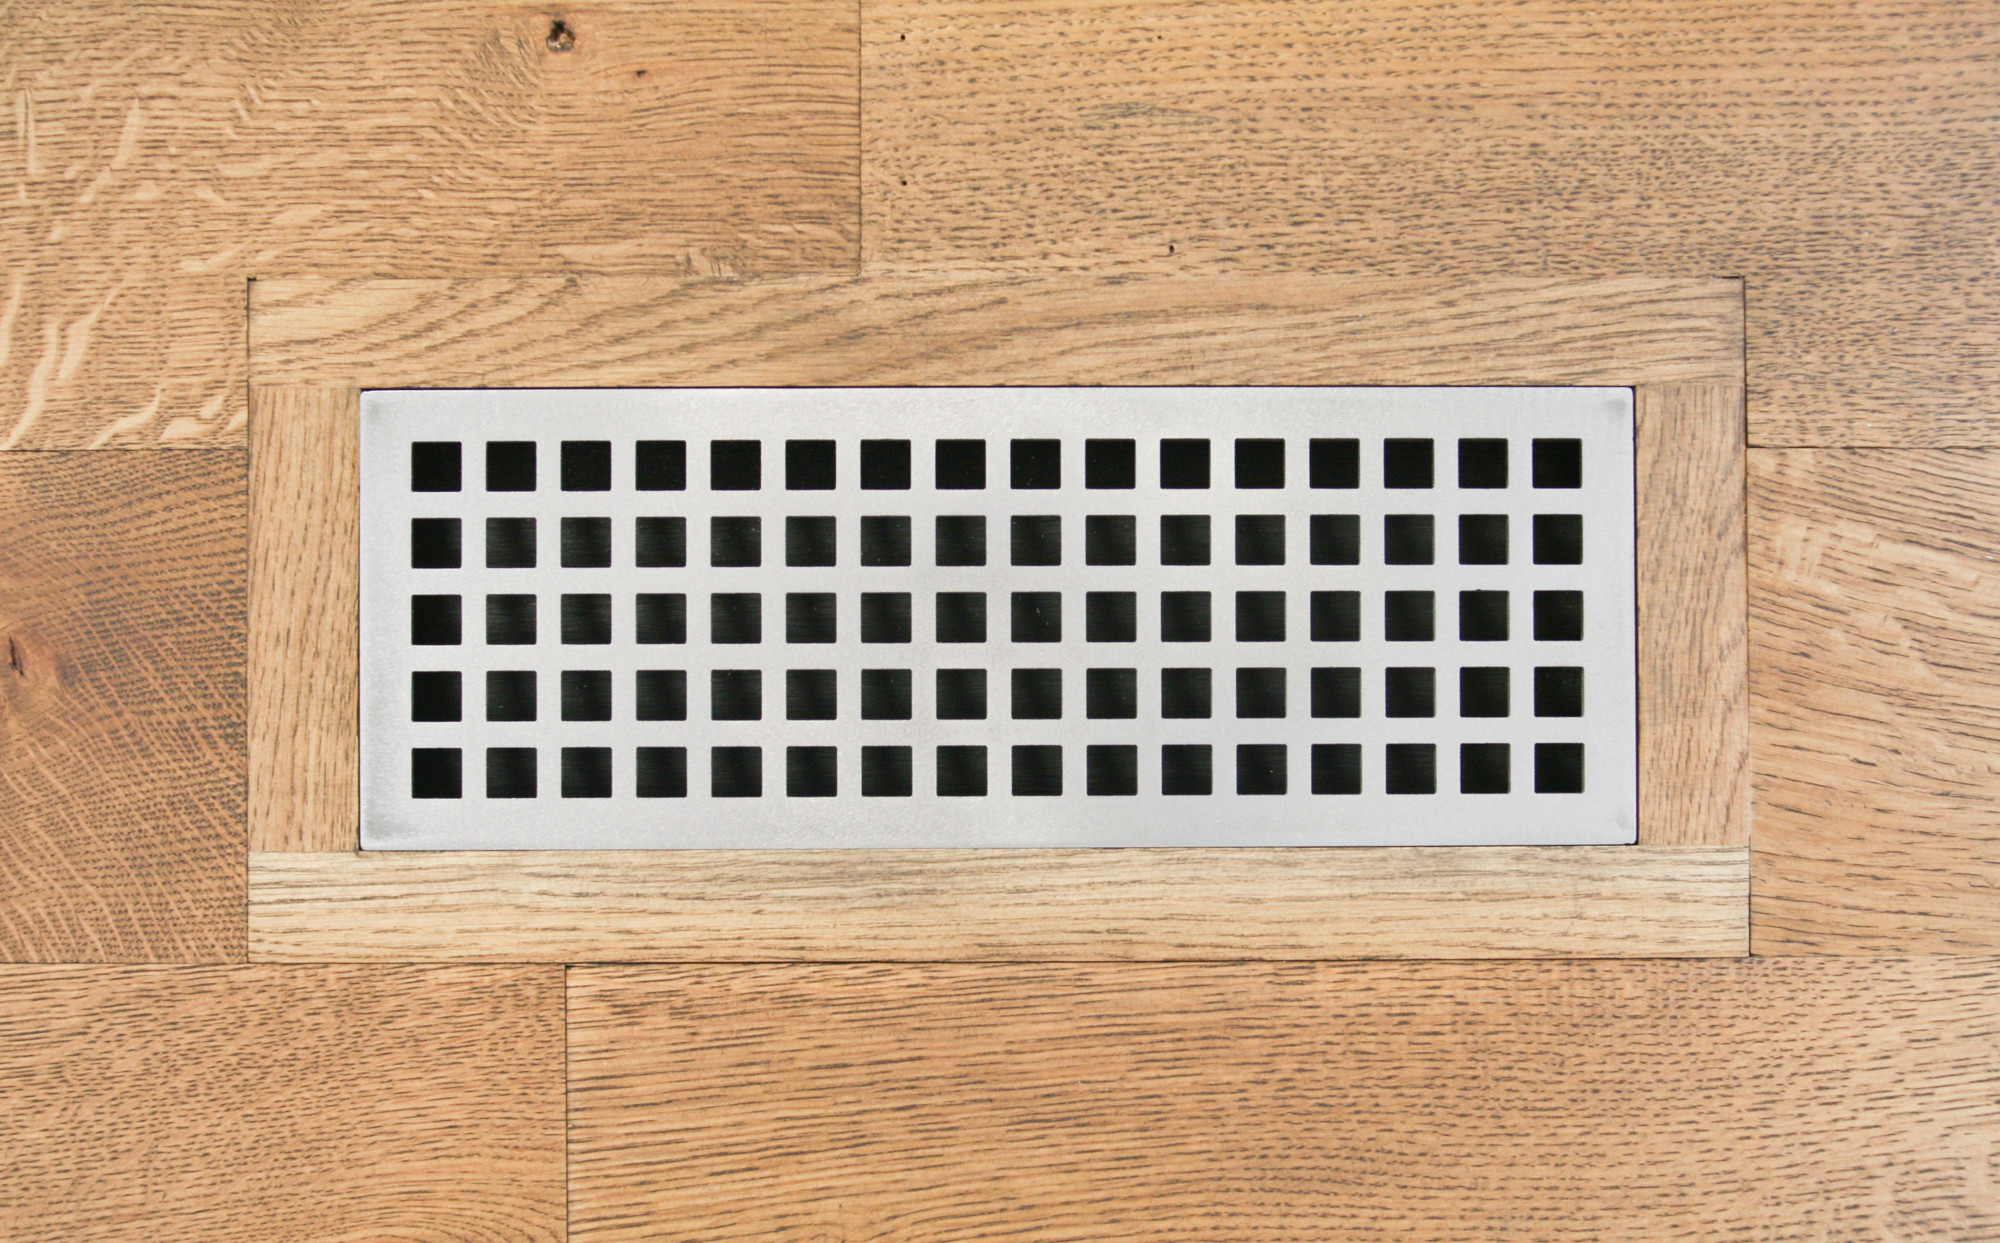 wood eggcrate east volko reclaimedinstalledwm floor grilles vent woodventseggcrate custom was vents in this installed project ny htm hampton and reclaimed